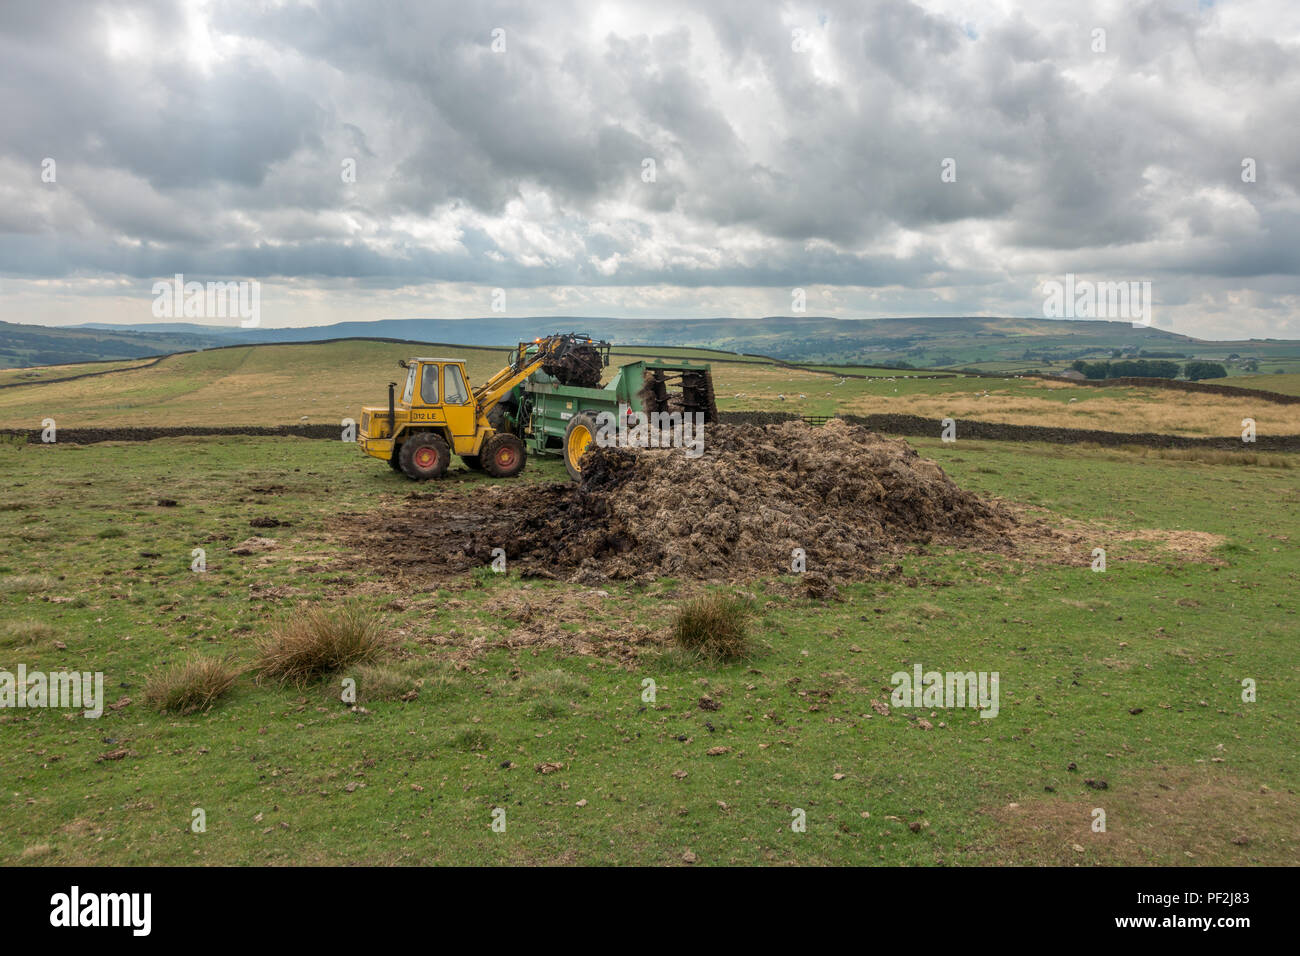 UK Farming: Farmer loading up a muck spreading vehicle - Stock Image